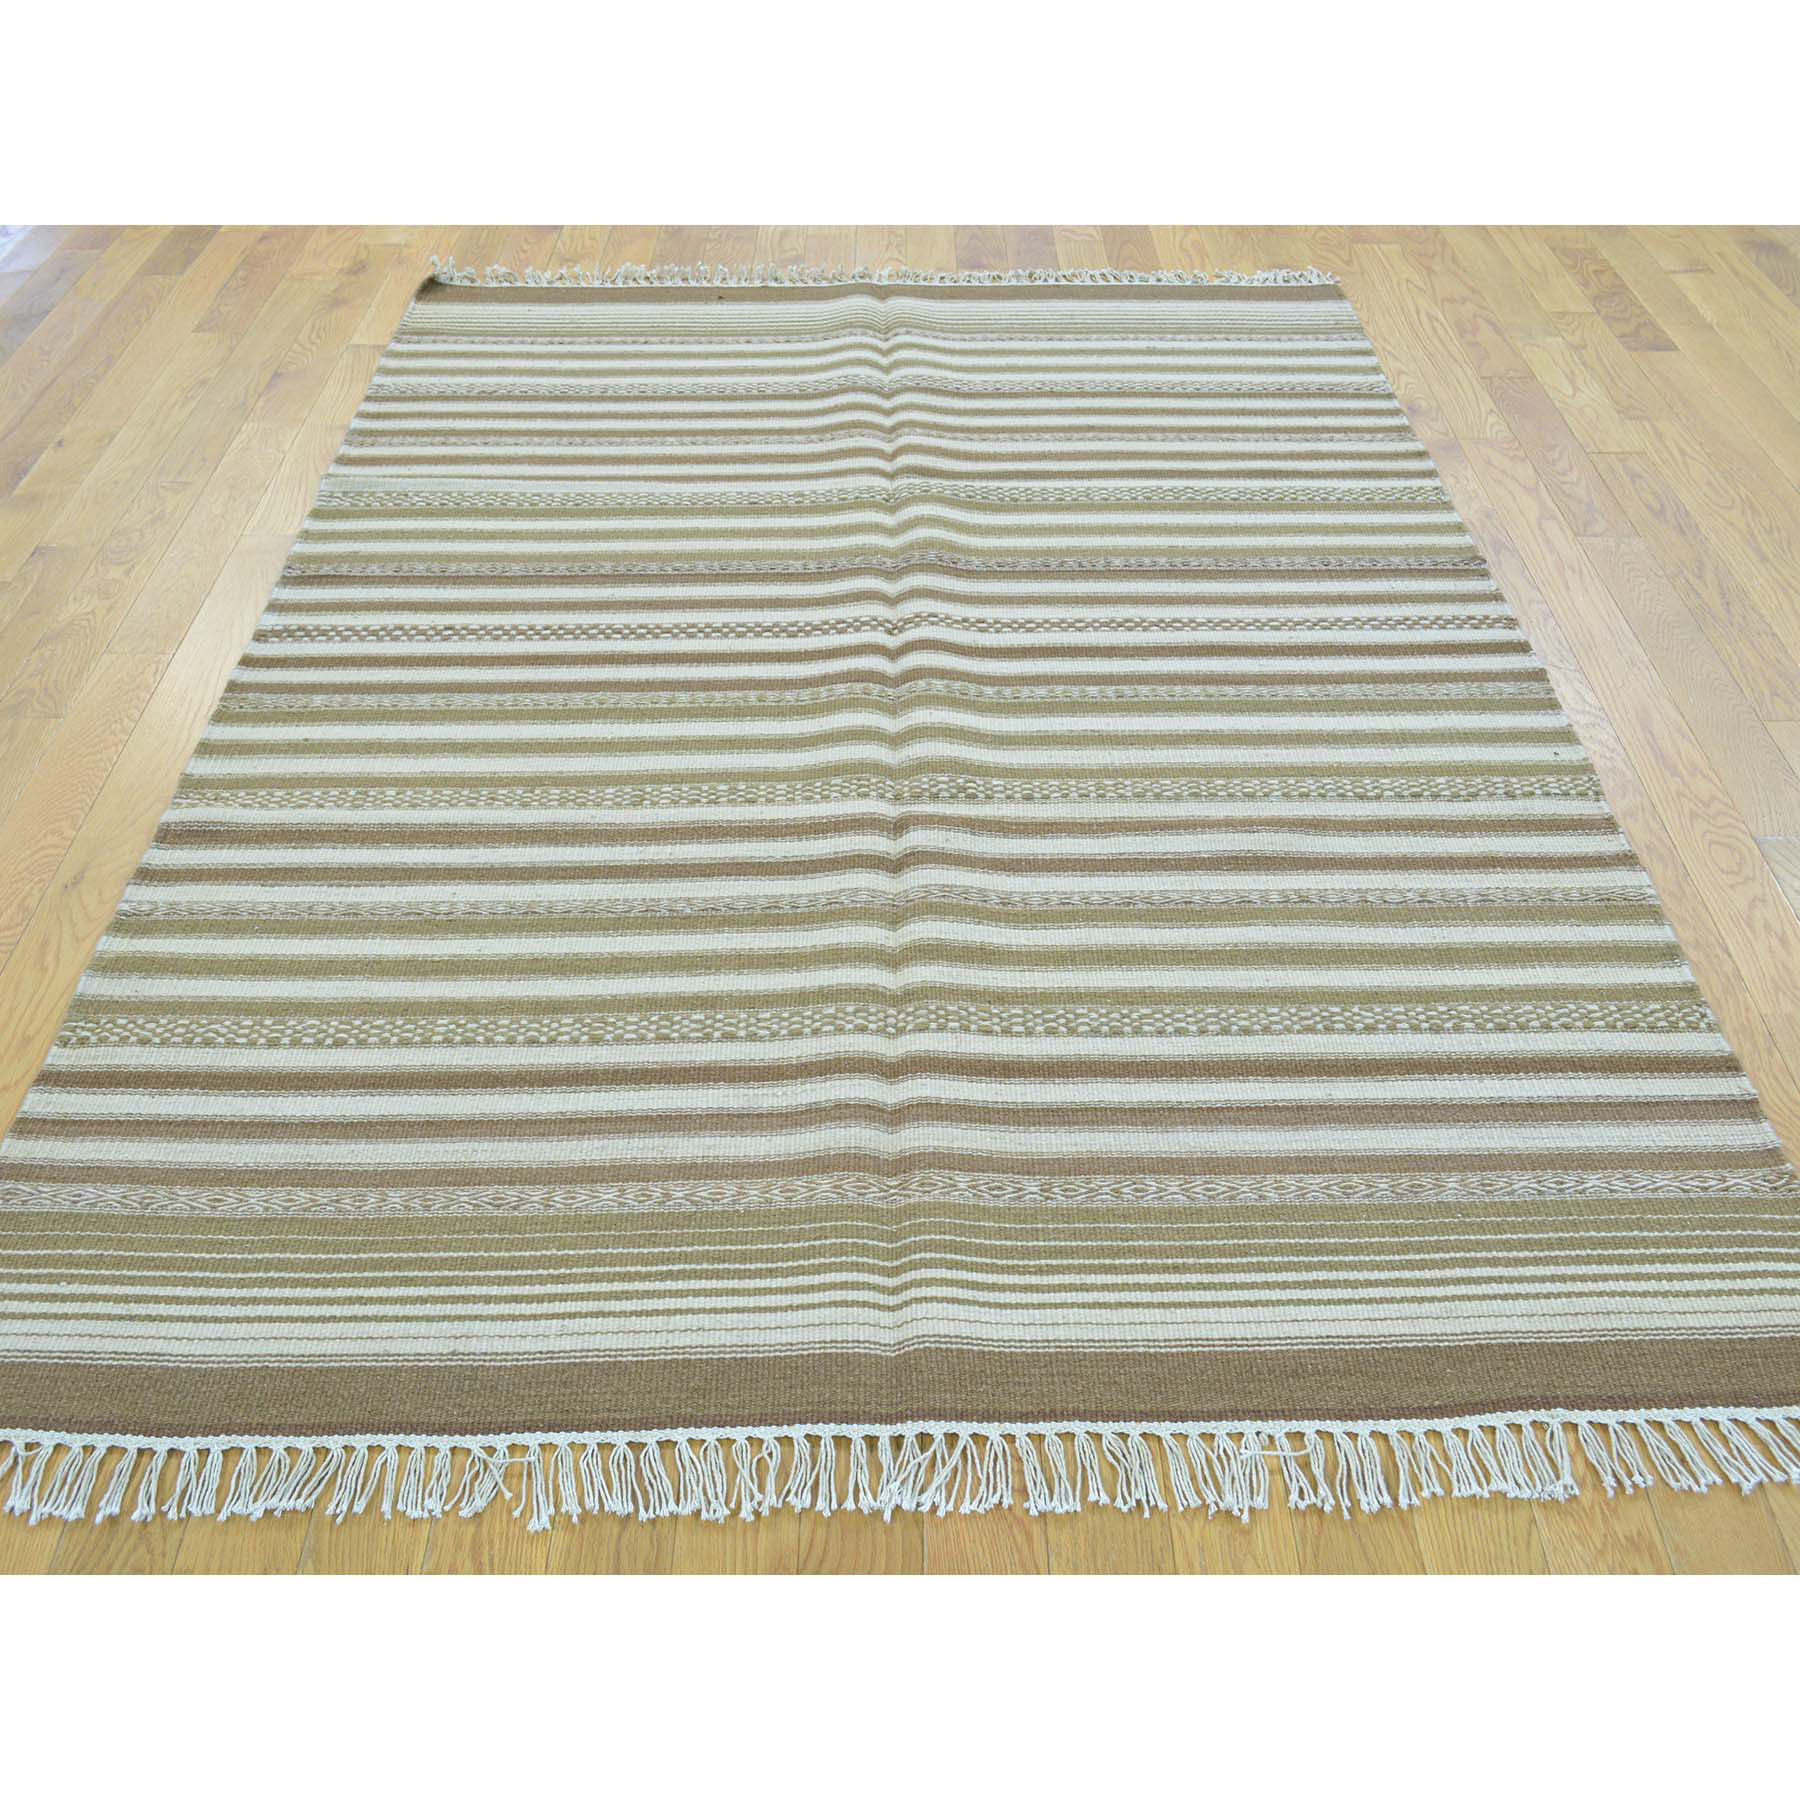 4-10 x7- Durie Kilim Reversible Flat Weave Hand Woven Oriental Rug